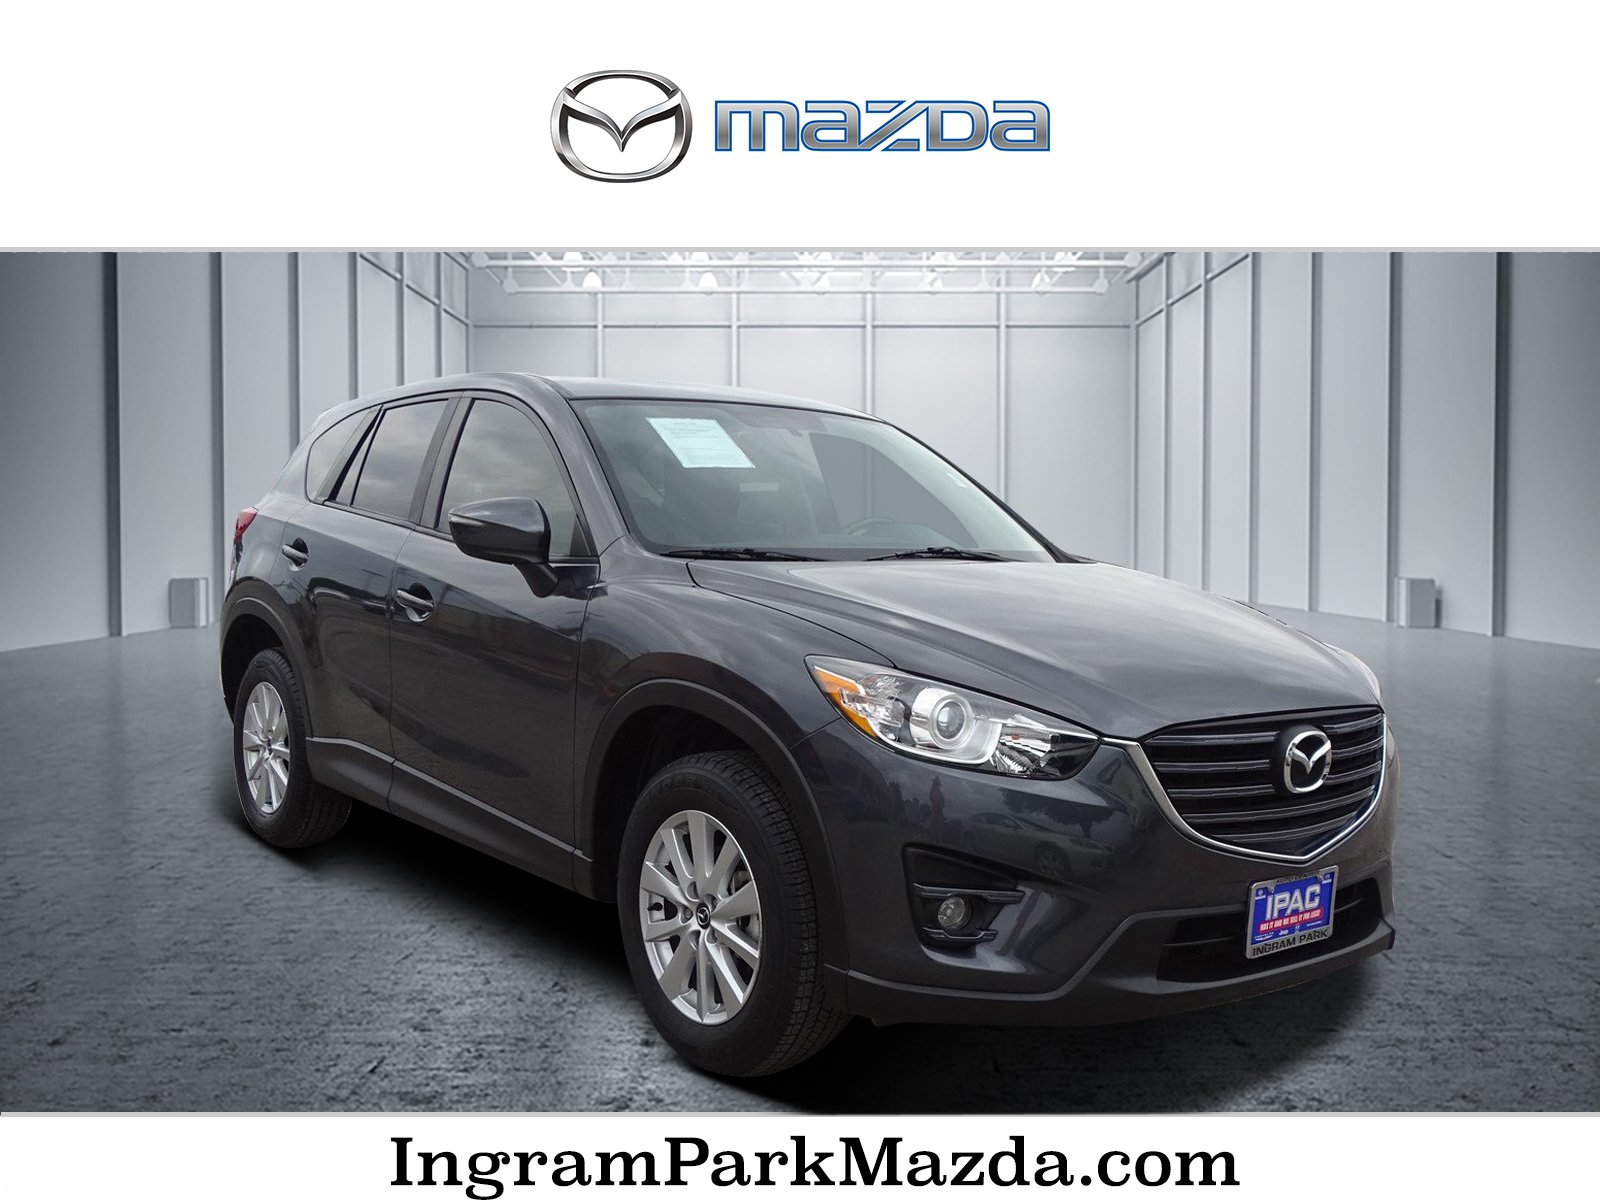 Pre-Owned 2016 Mazda CX-5 Touring With Navigation